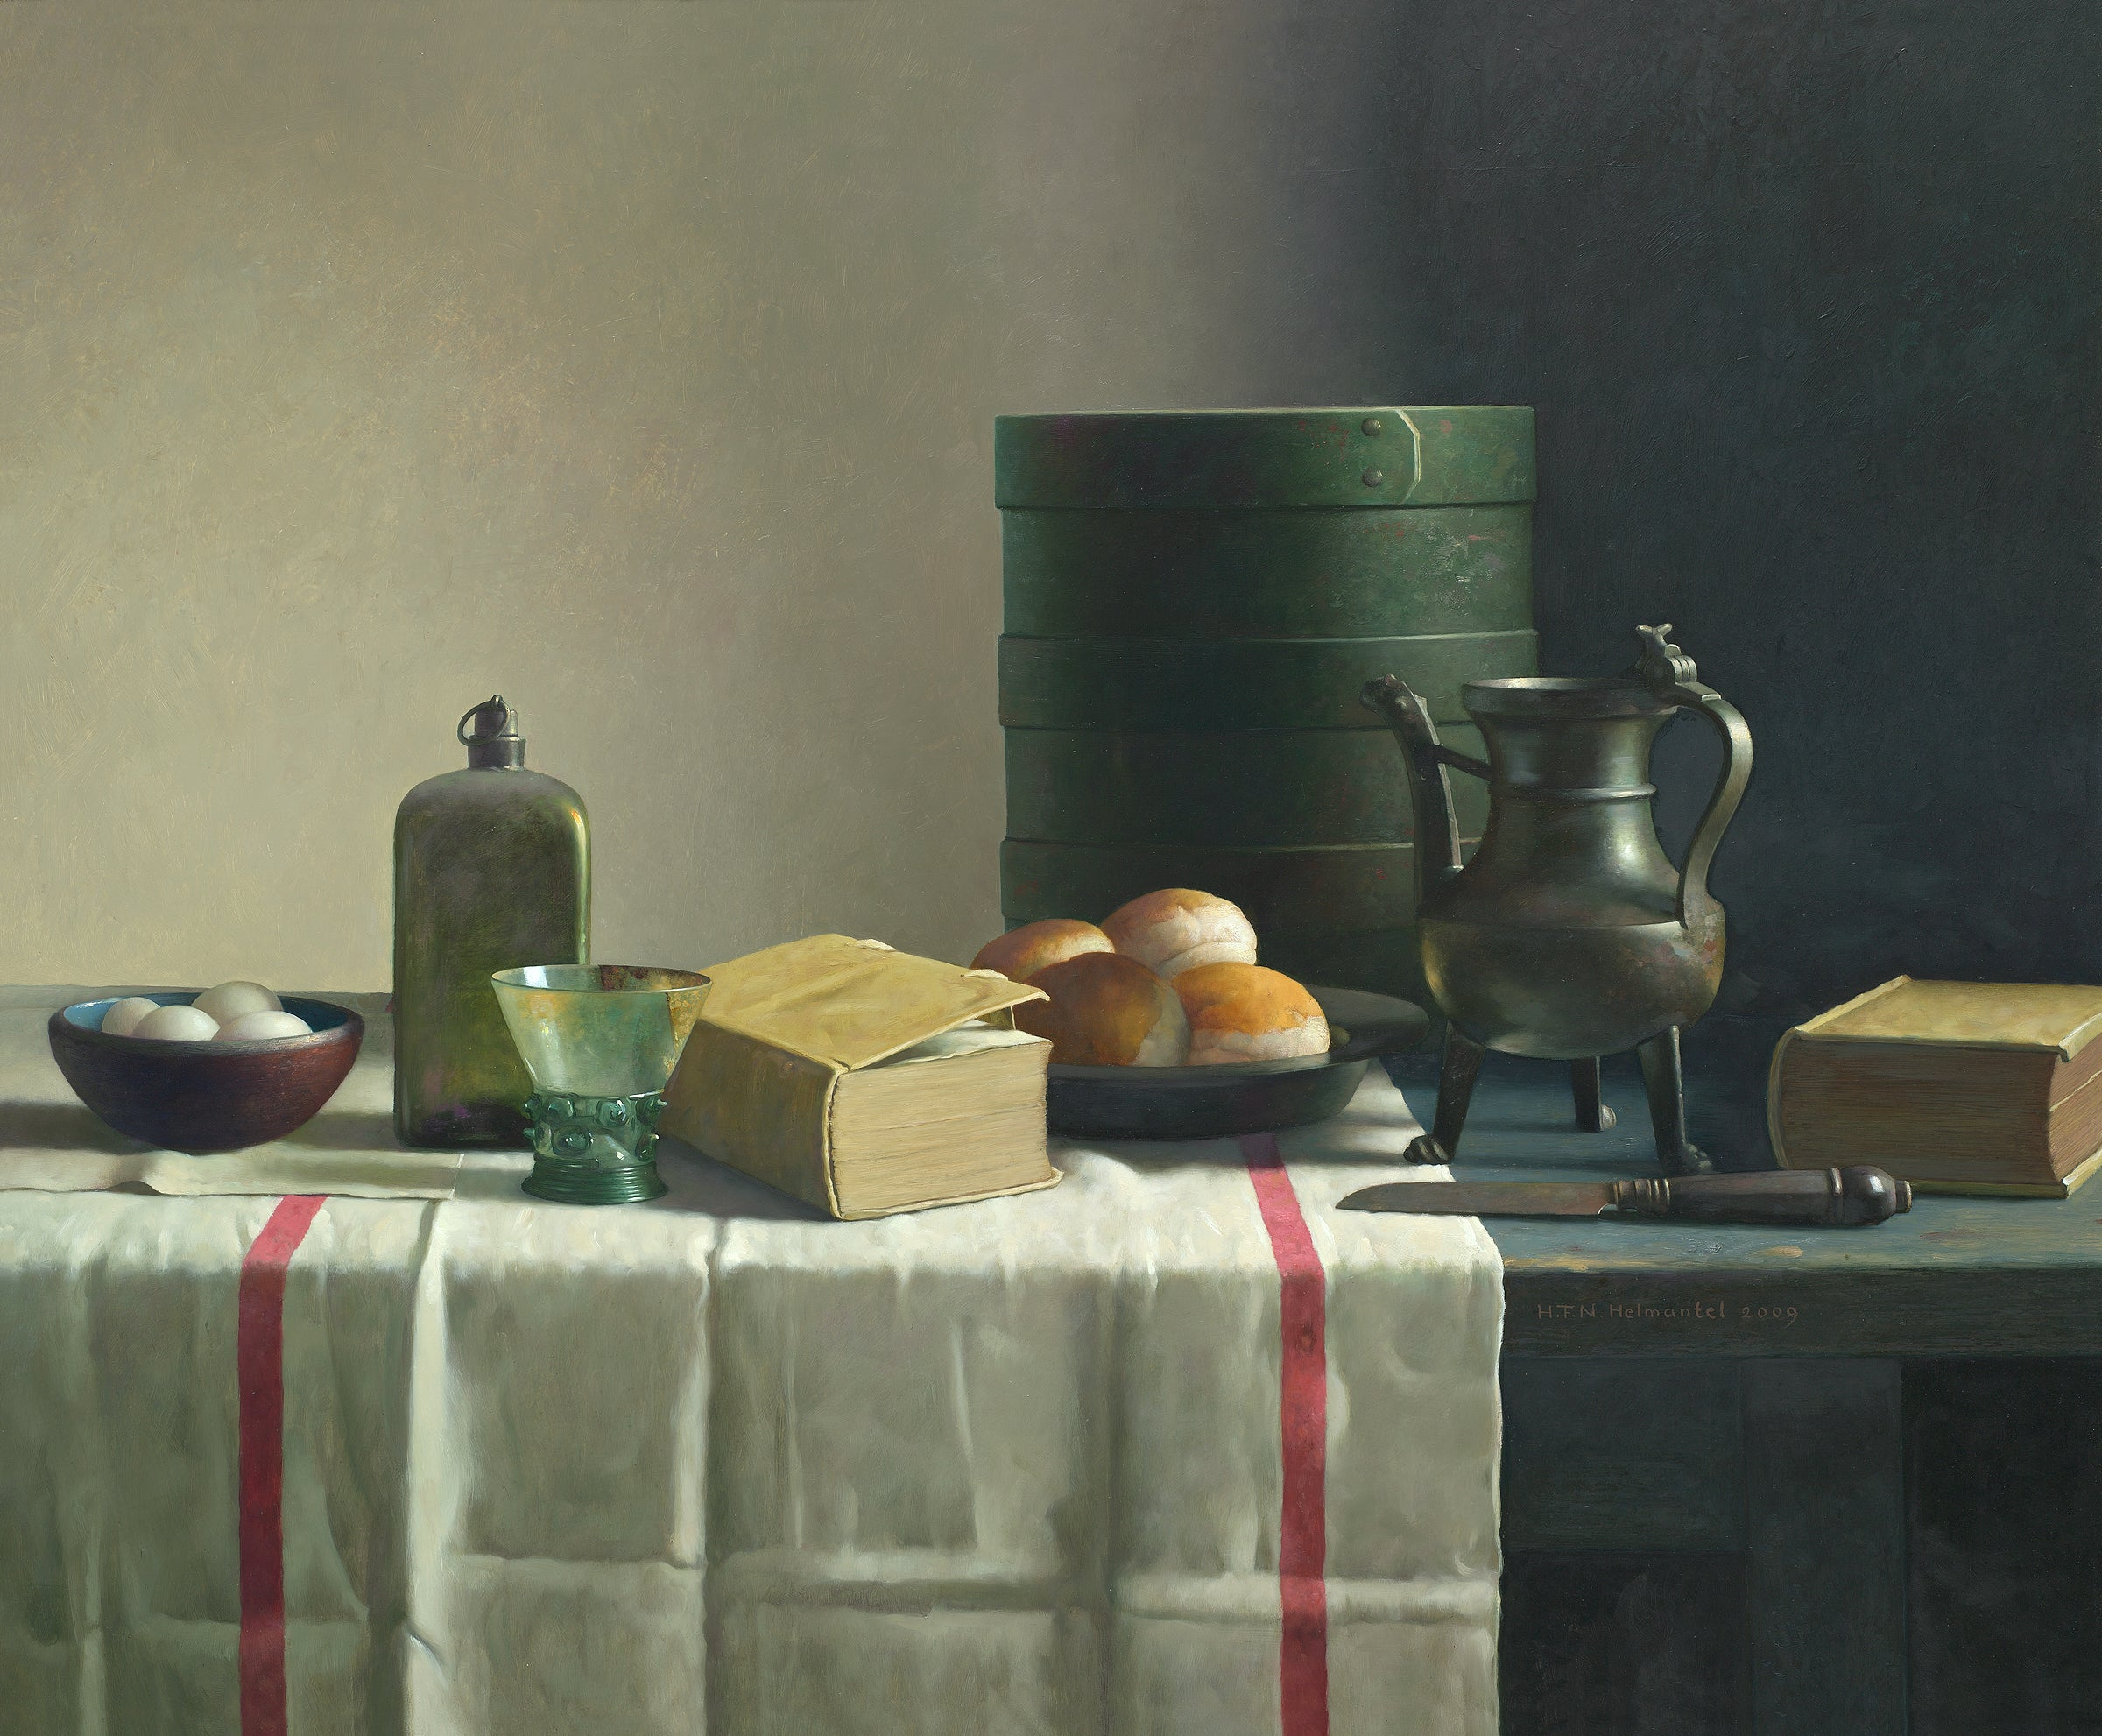 Still-Life with  Jar - 21st Century Contemporary by Dutch Master Henk Helmantel